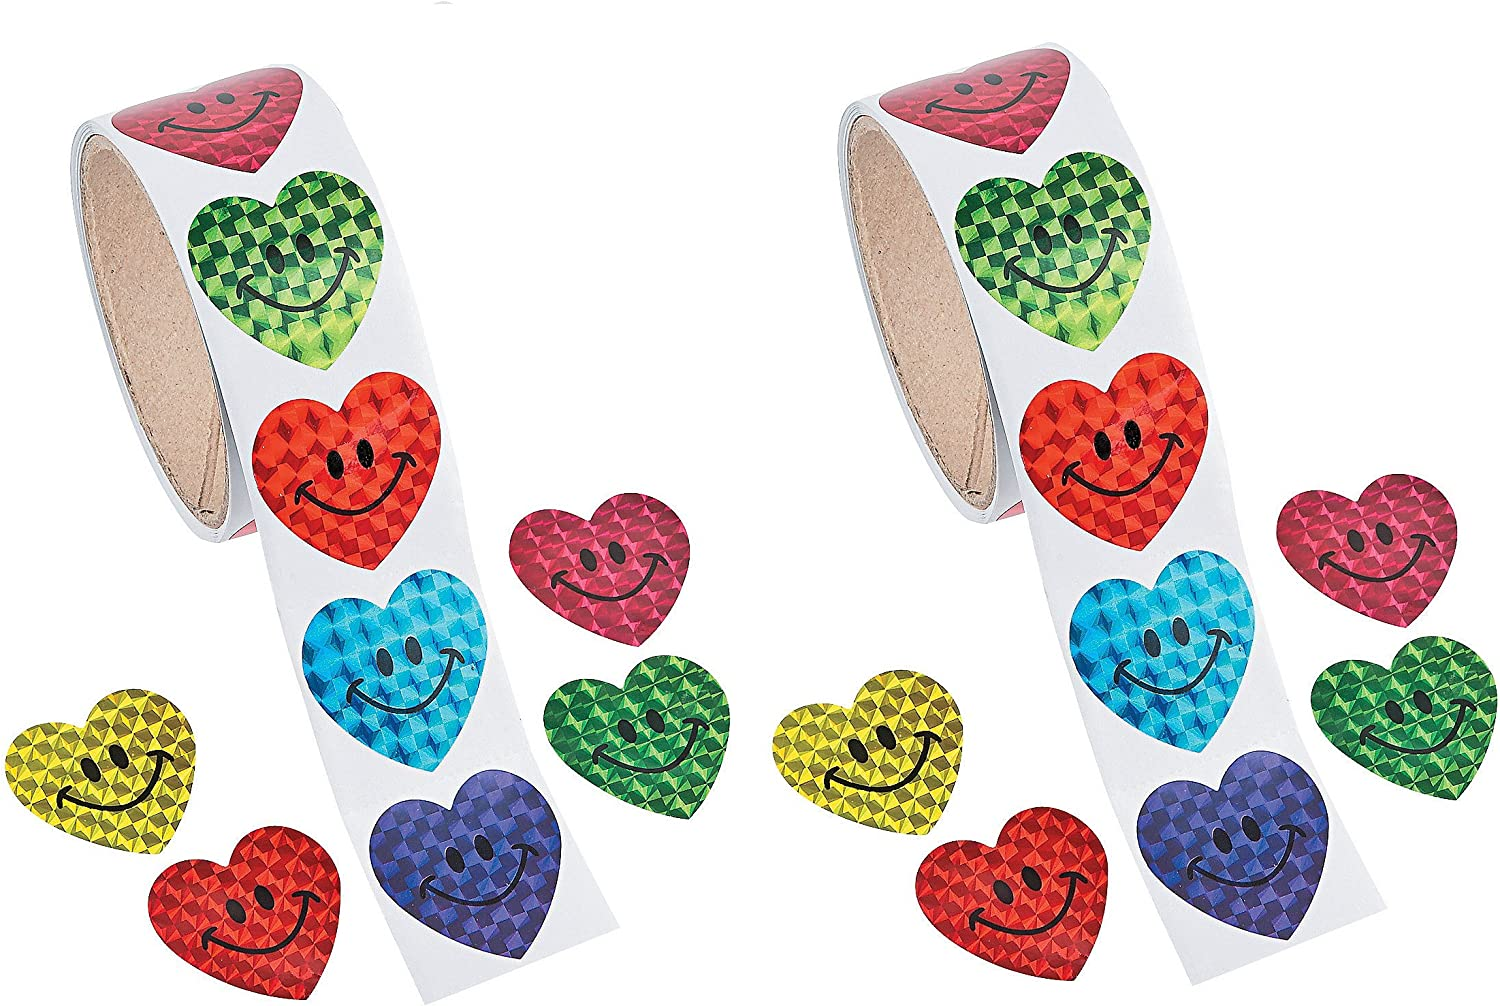 Roll of 100 Smiling Face Stickers for Kids CraftsChildrens Craft Stickers